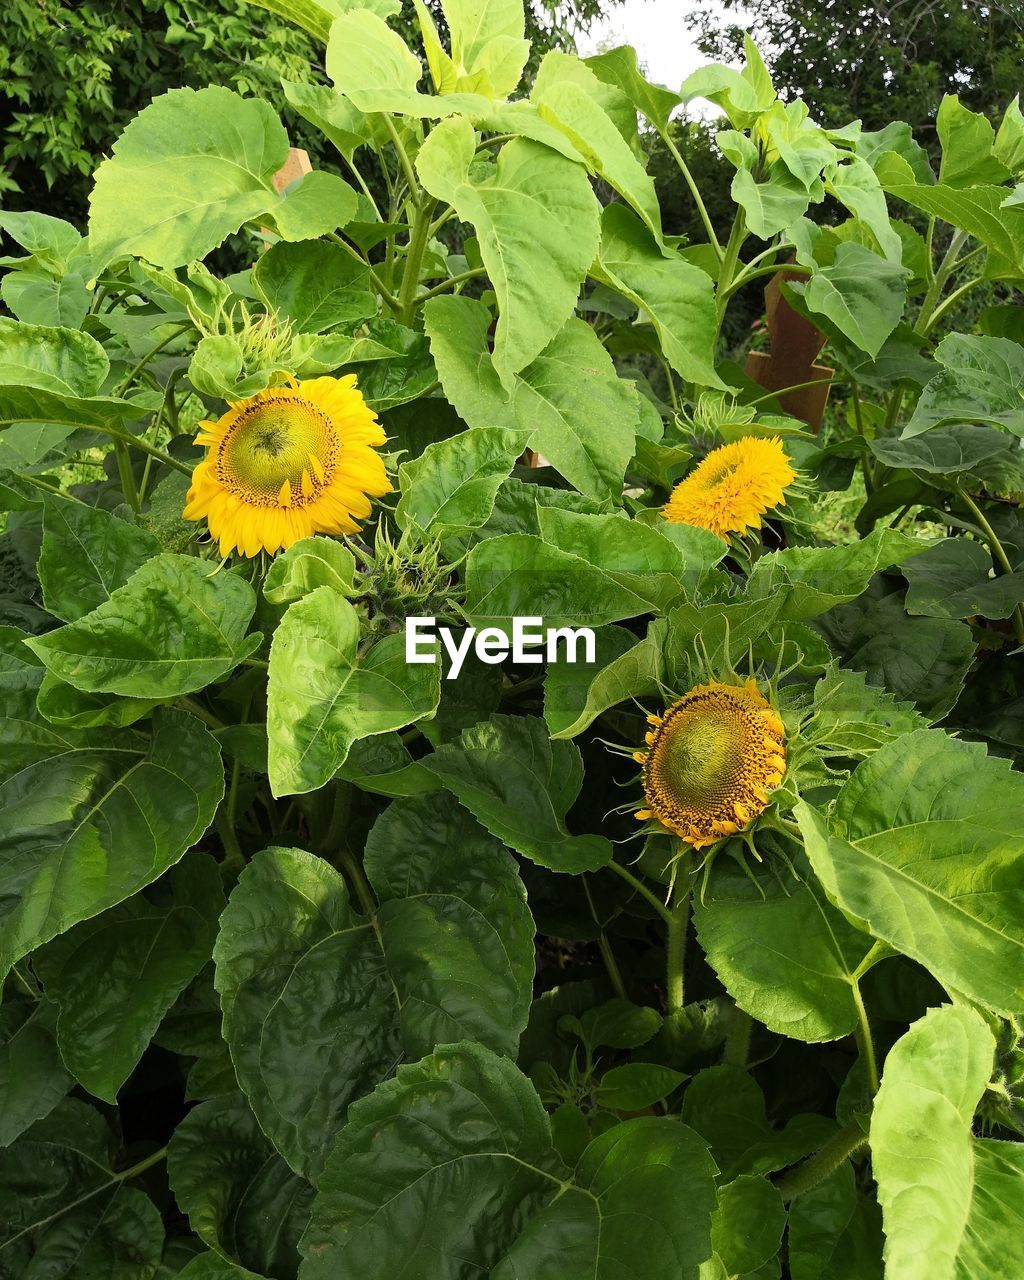 flower, plant, flowering plant, yellow, growth, freshness, plant part, leaf, fragility, beauty in nature, flower head, vulnerability, inflorescence, green color, close-up, nature, petal, day, no people, outdoors, sunflower